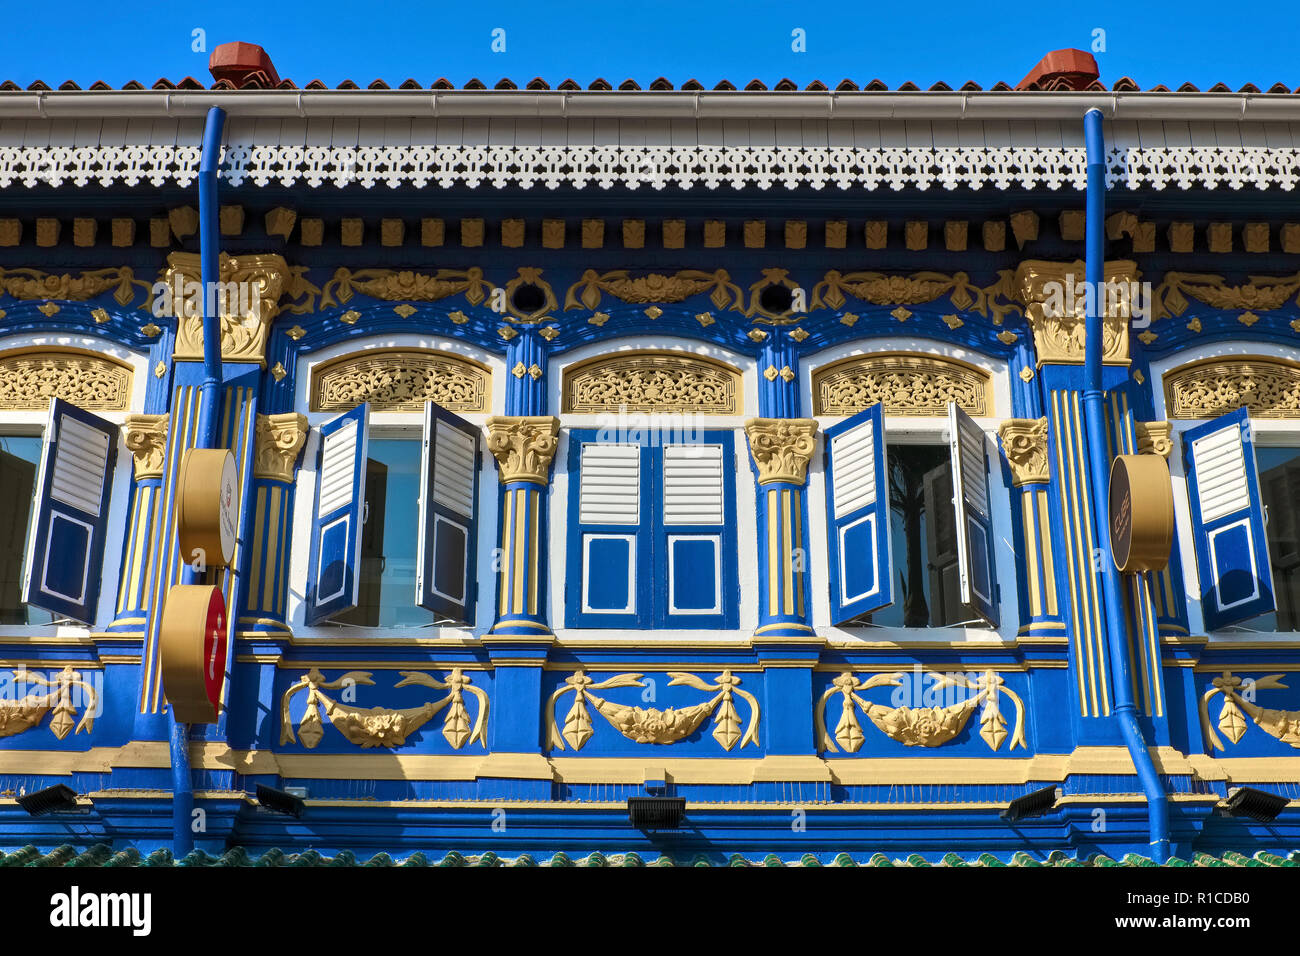 The prettily painted, Peranakan-style facade Cube Boutique Capsule Hotel @ Kampong Glam, near Sultan Mosque, Singapore - Stock Image